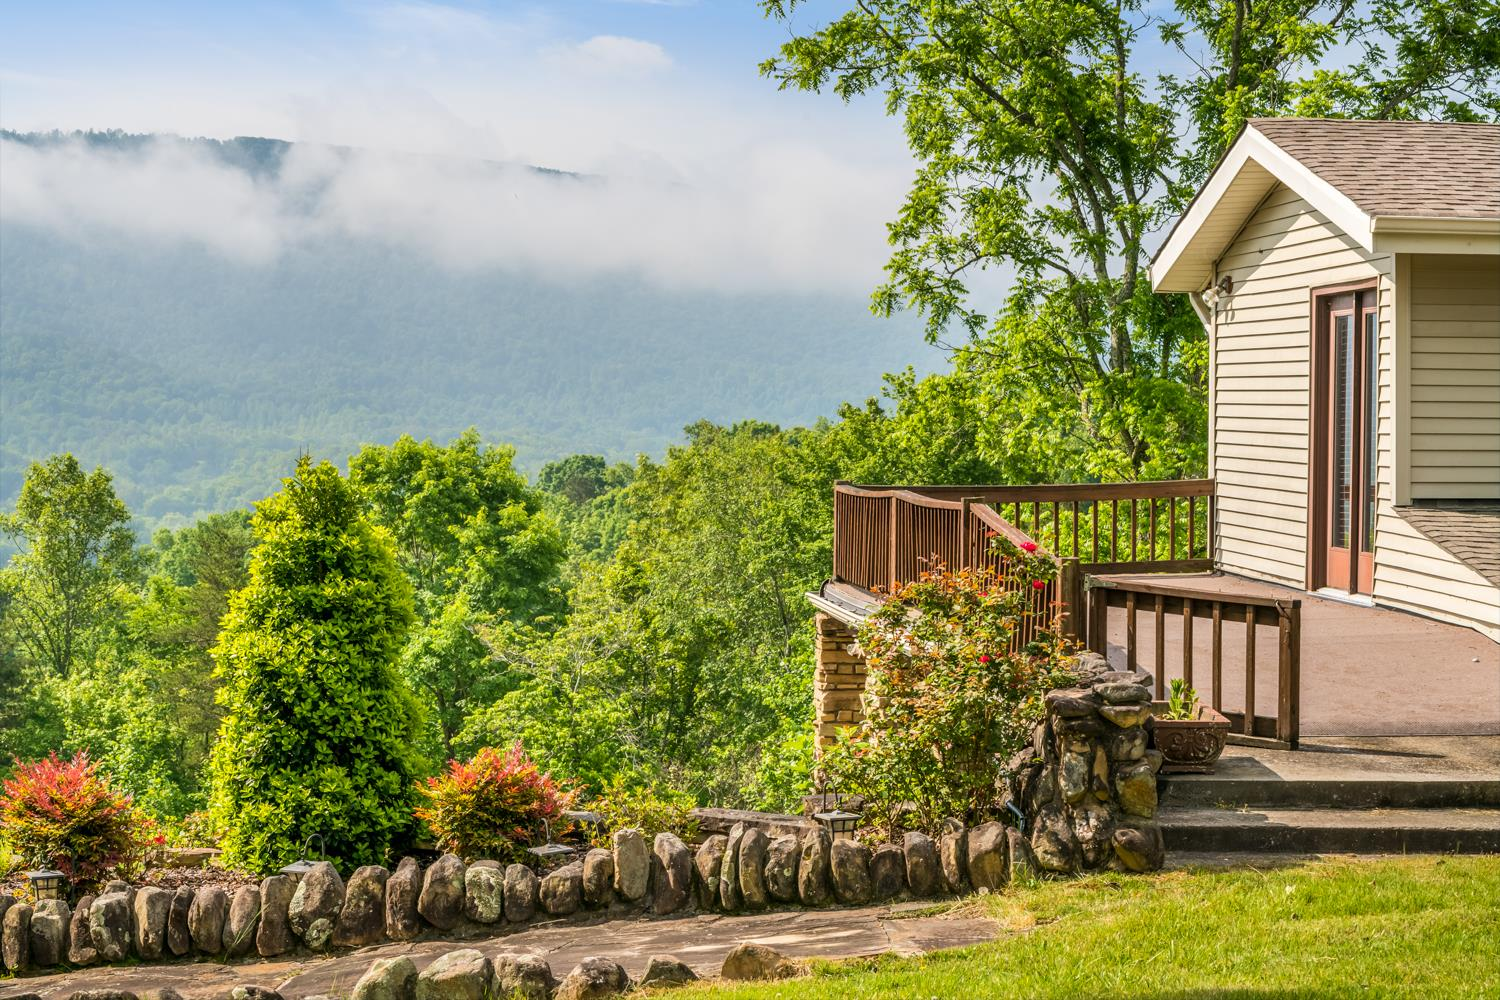 362 Daisy Dr, Pikeville, TN 37367 - Pikeville, TN real estate listing